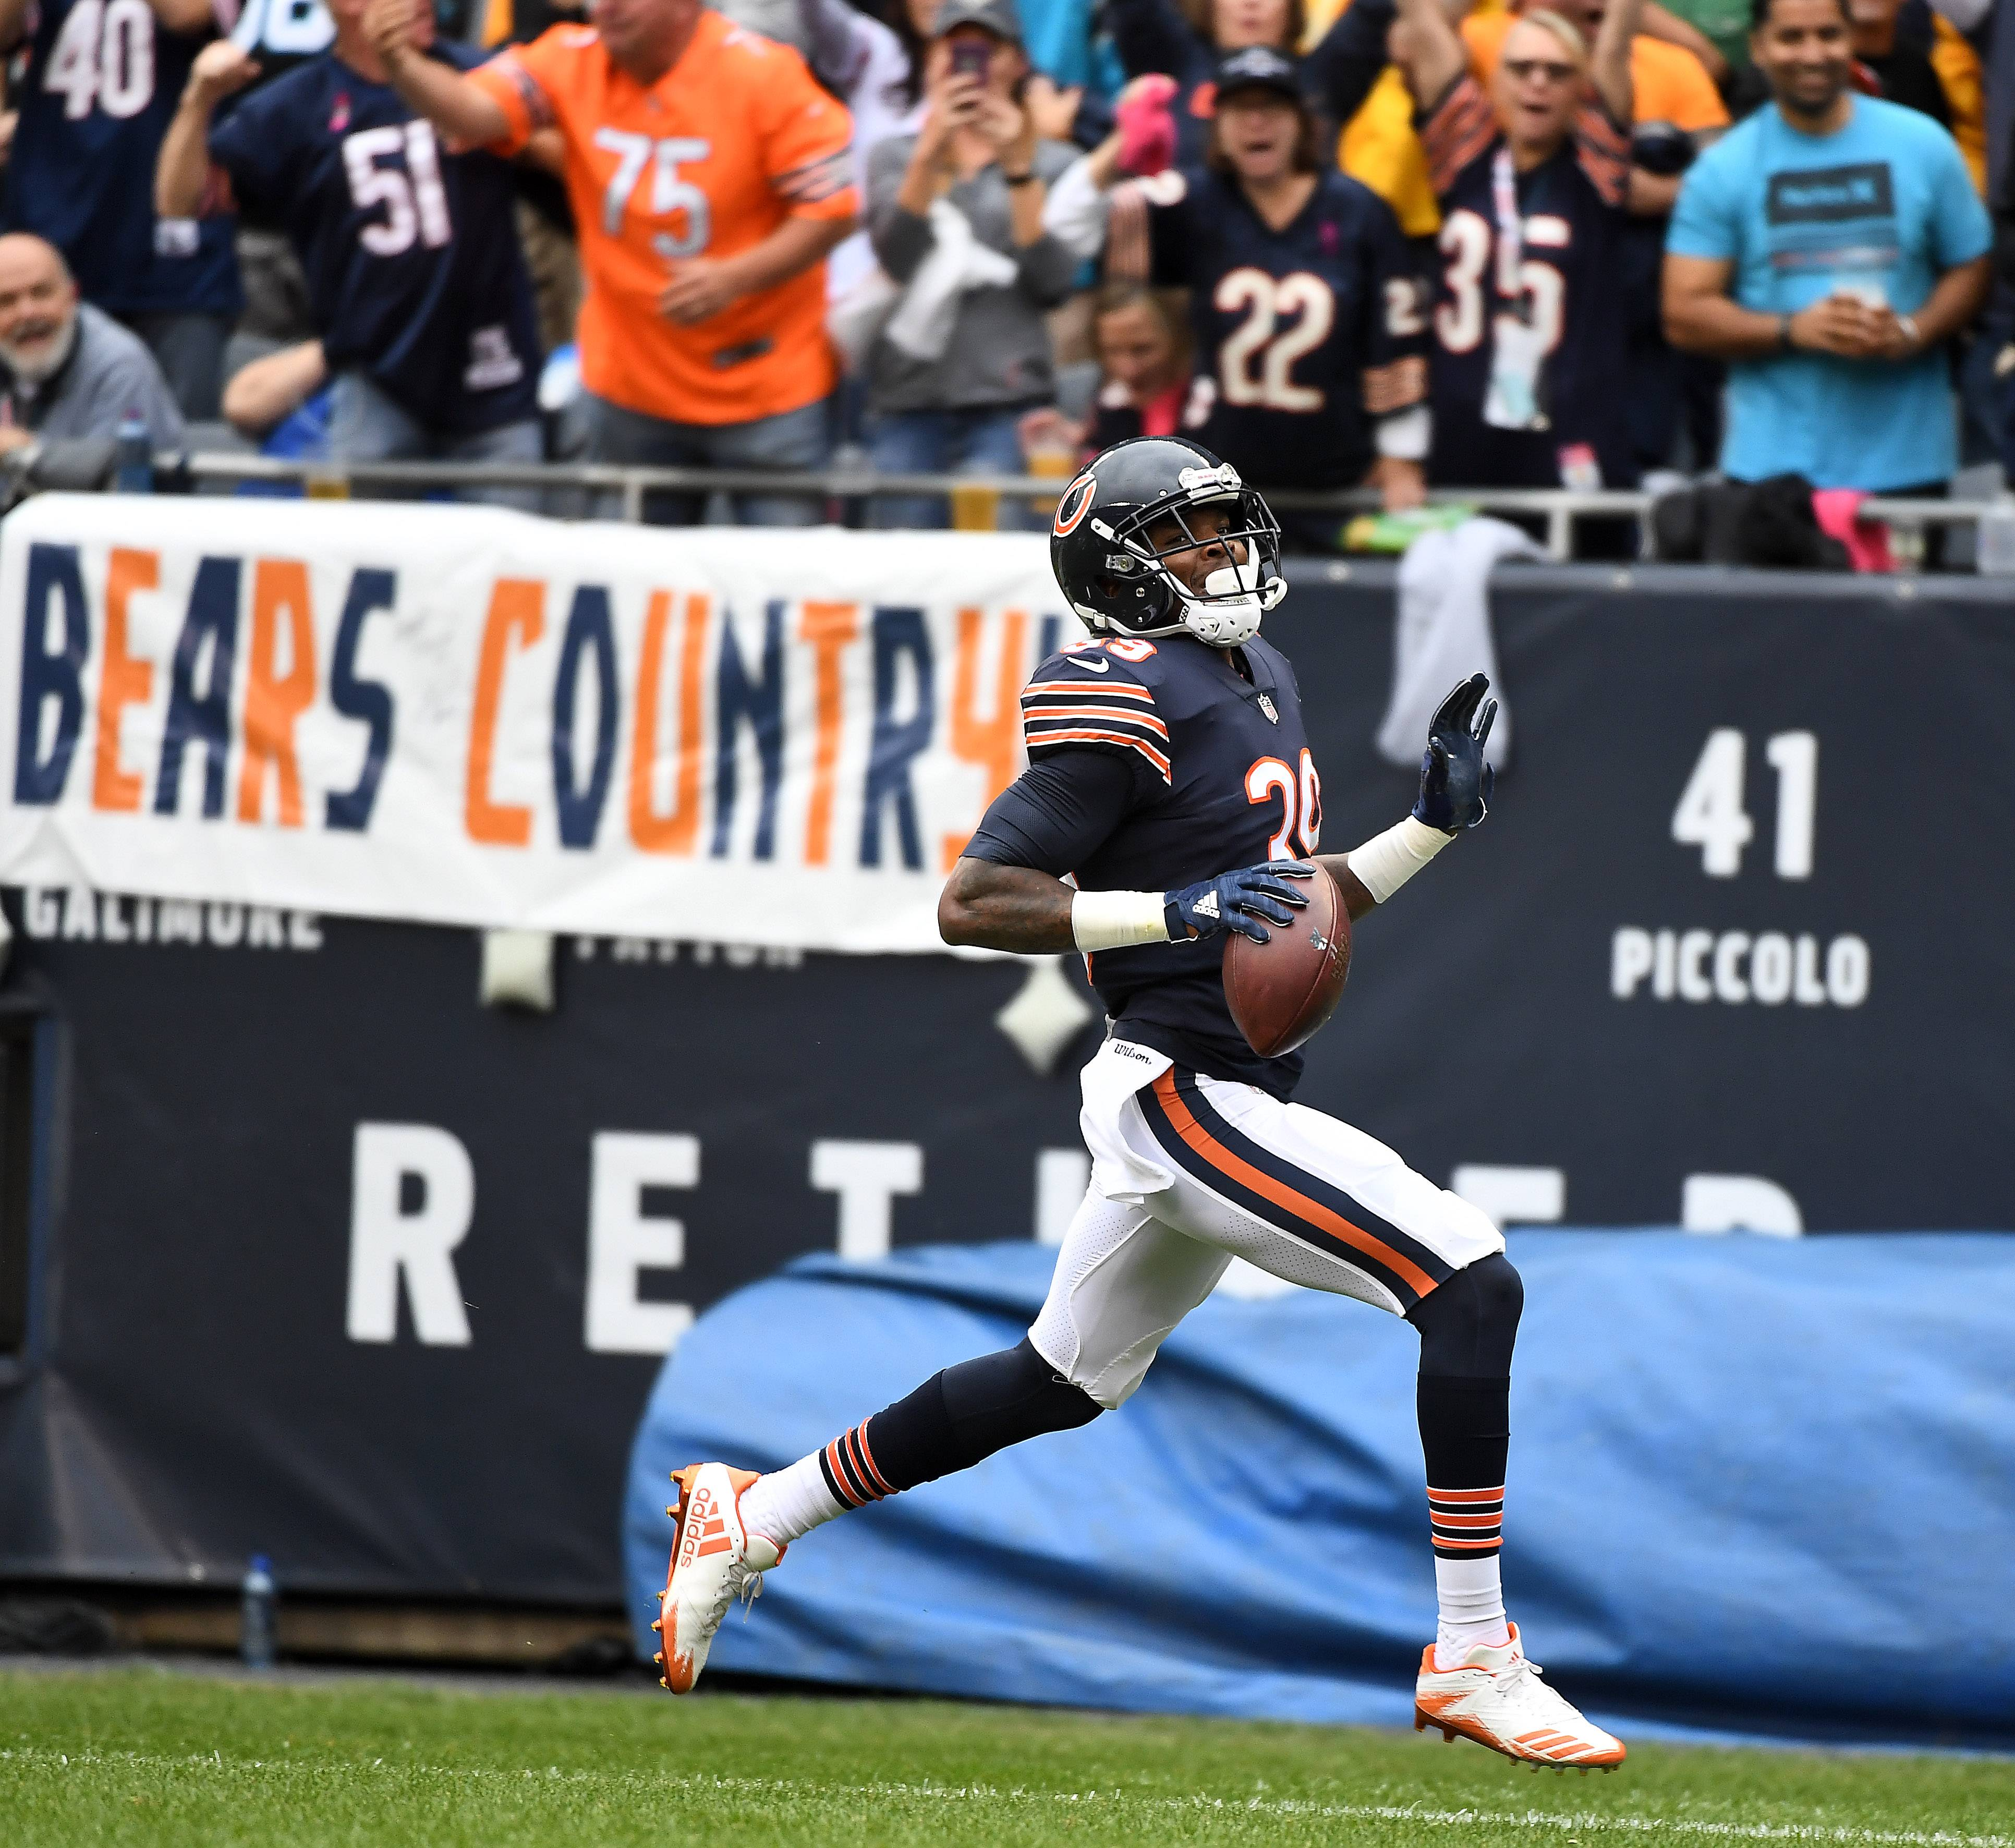 Chicago Bears free safety Eddie Jackson (39) glides into the end zone after a 75-yards for a fumble return for a touchdown during Sunday's game at Soldier Field in Chicago.